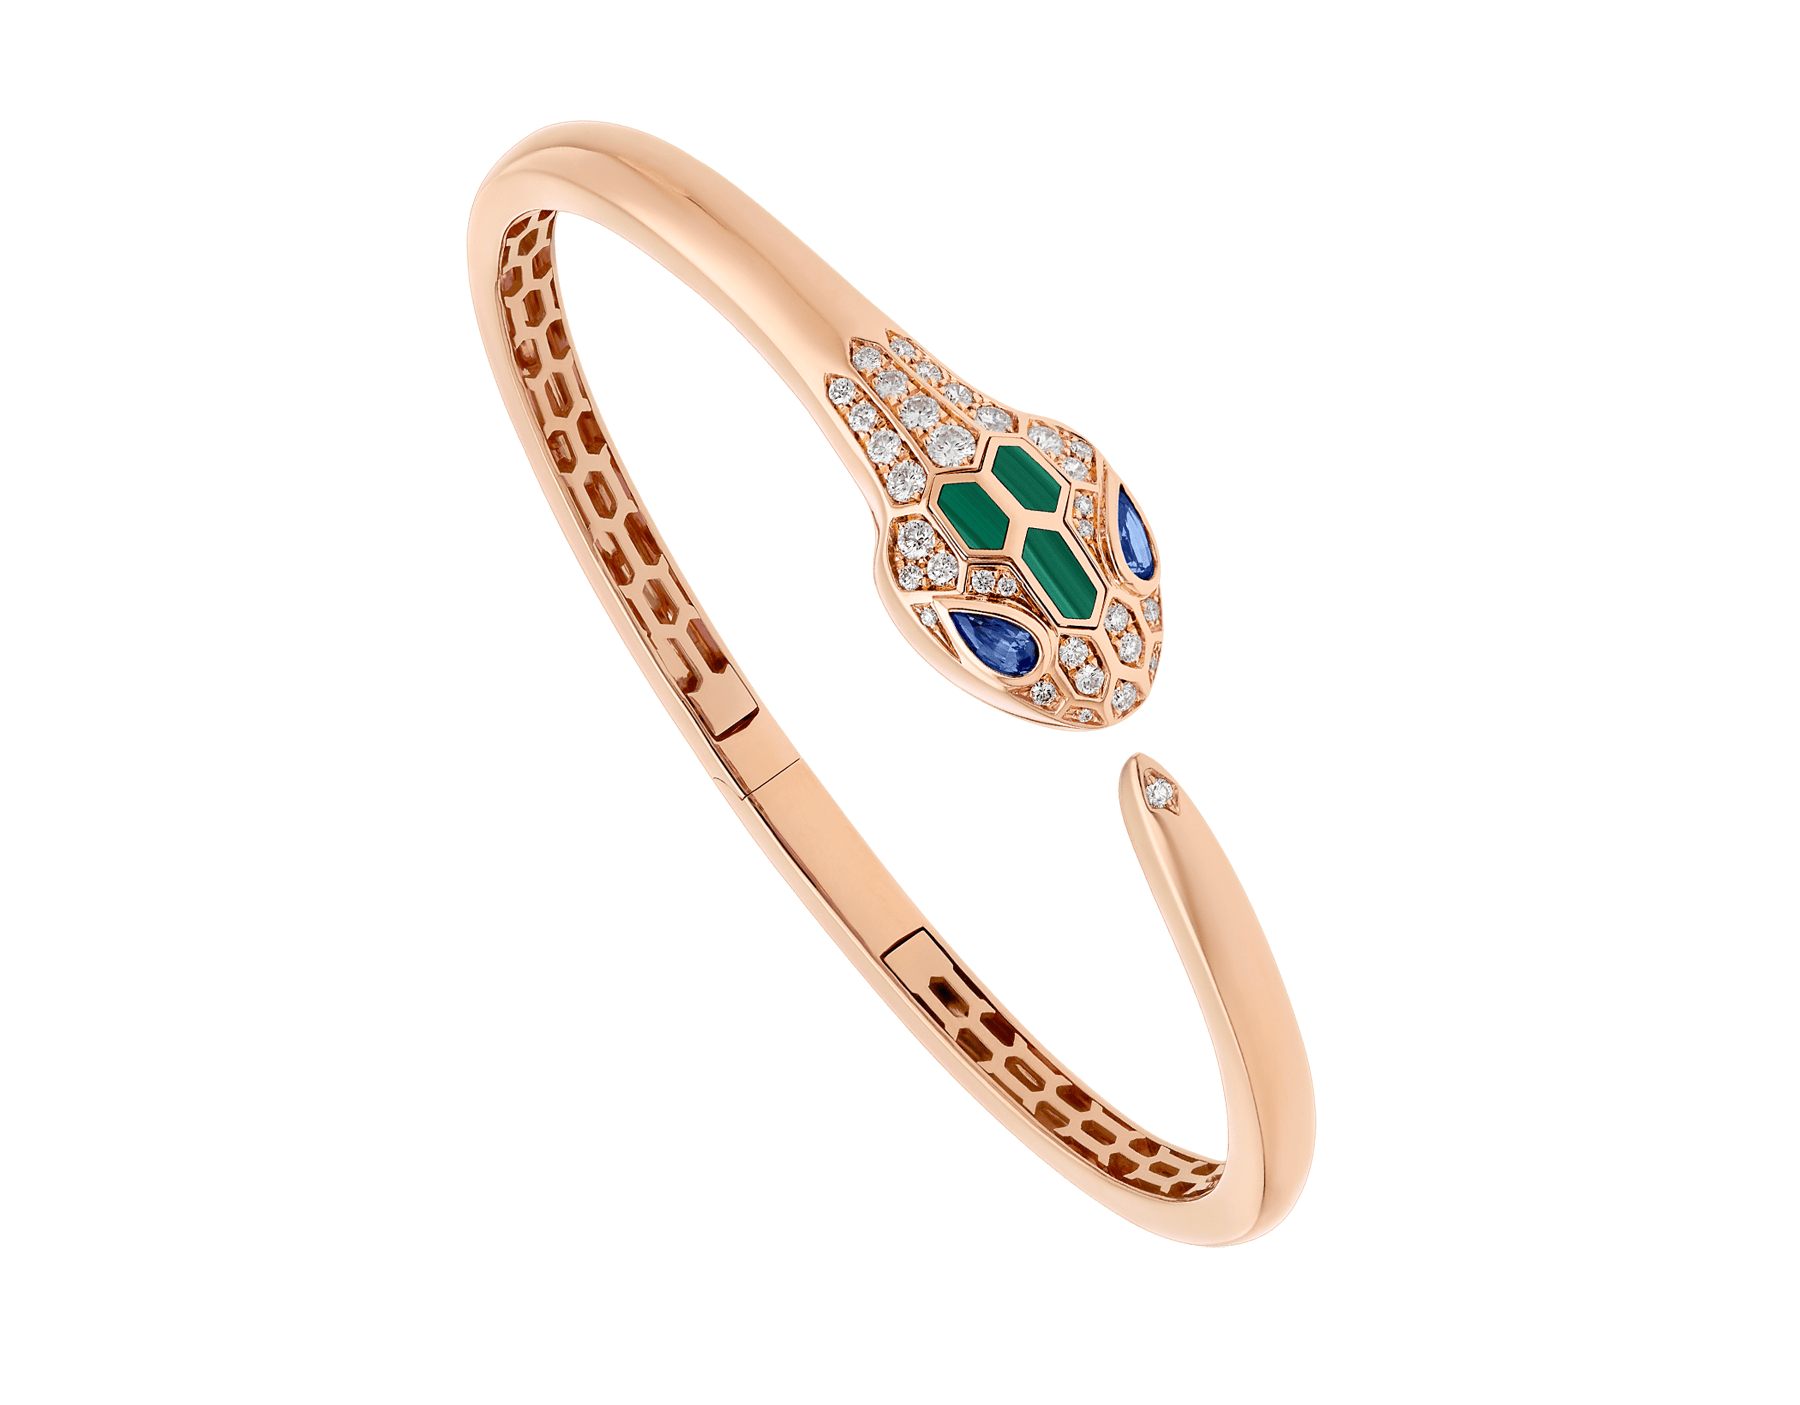 Serpenti 18 kt rose gold bracelet set with blue sapphire eyes, malachite elements and pavé diamonds. BR858586 image 1